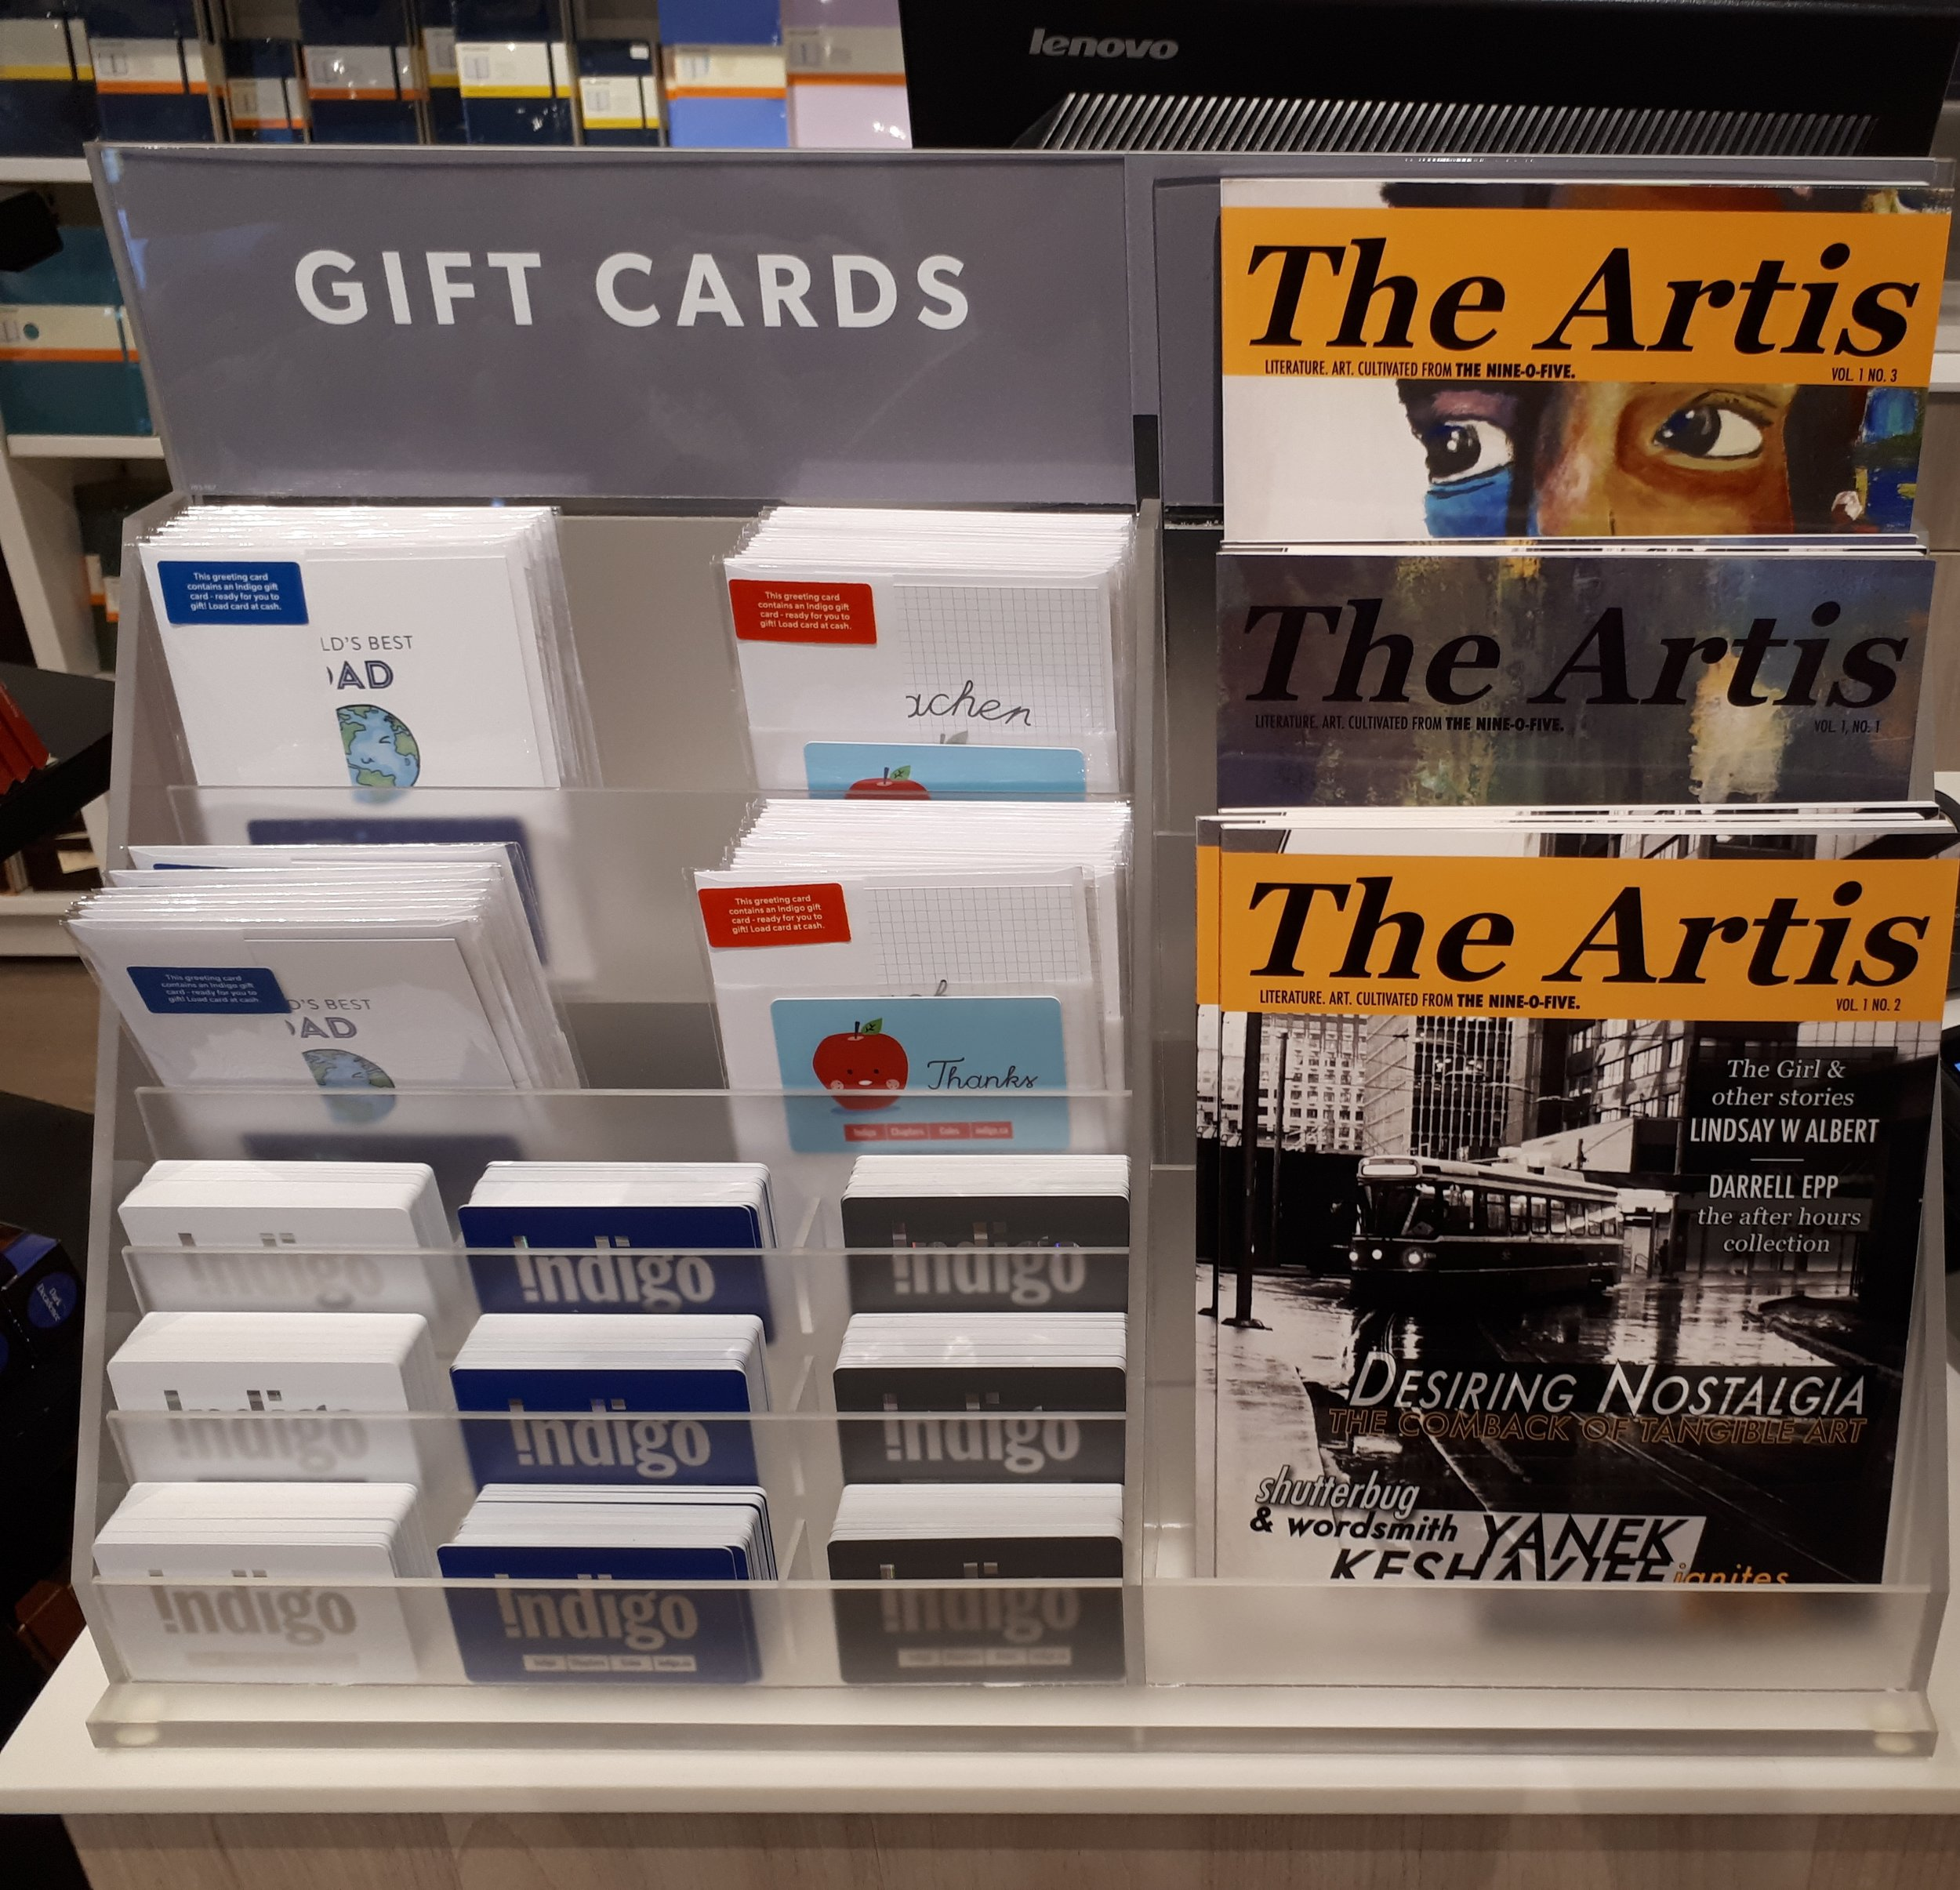 Order your VIP subscription NOW and never miss an issue! - At left, all three issues of The Artis on sale at the Indigo Spirit store in Oakville.